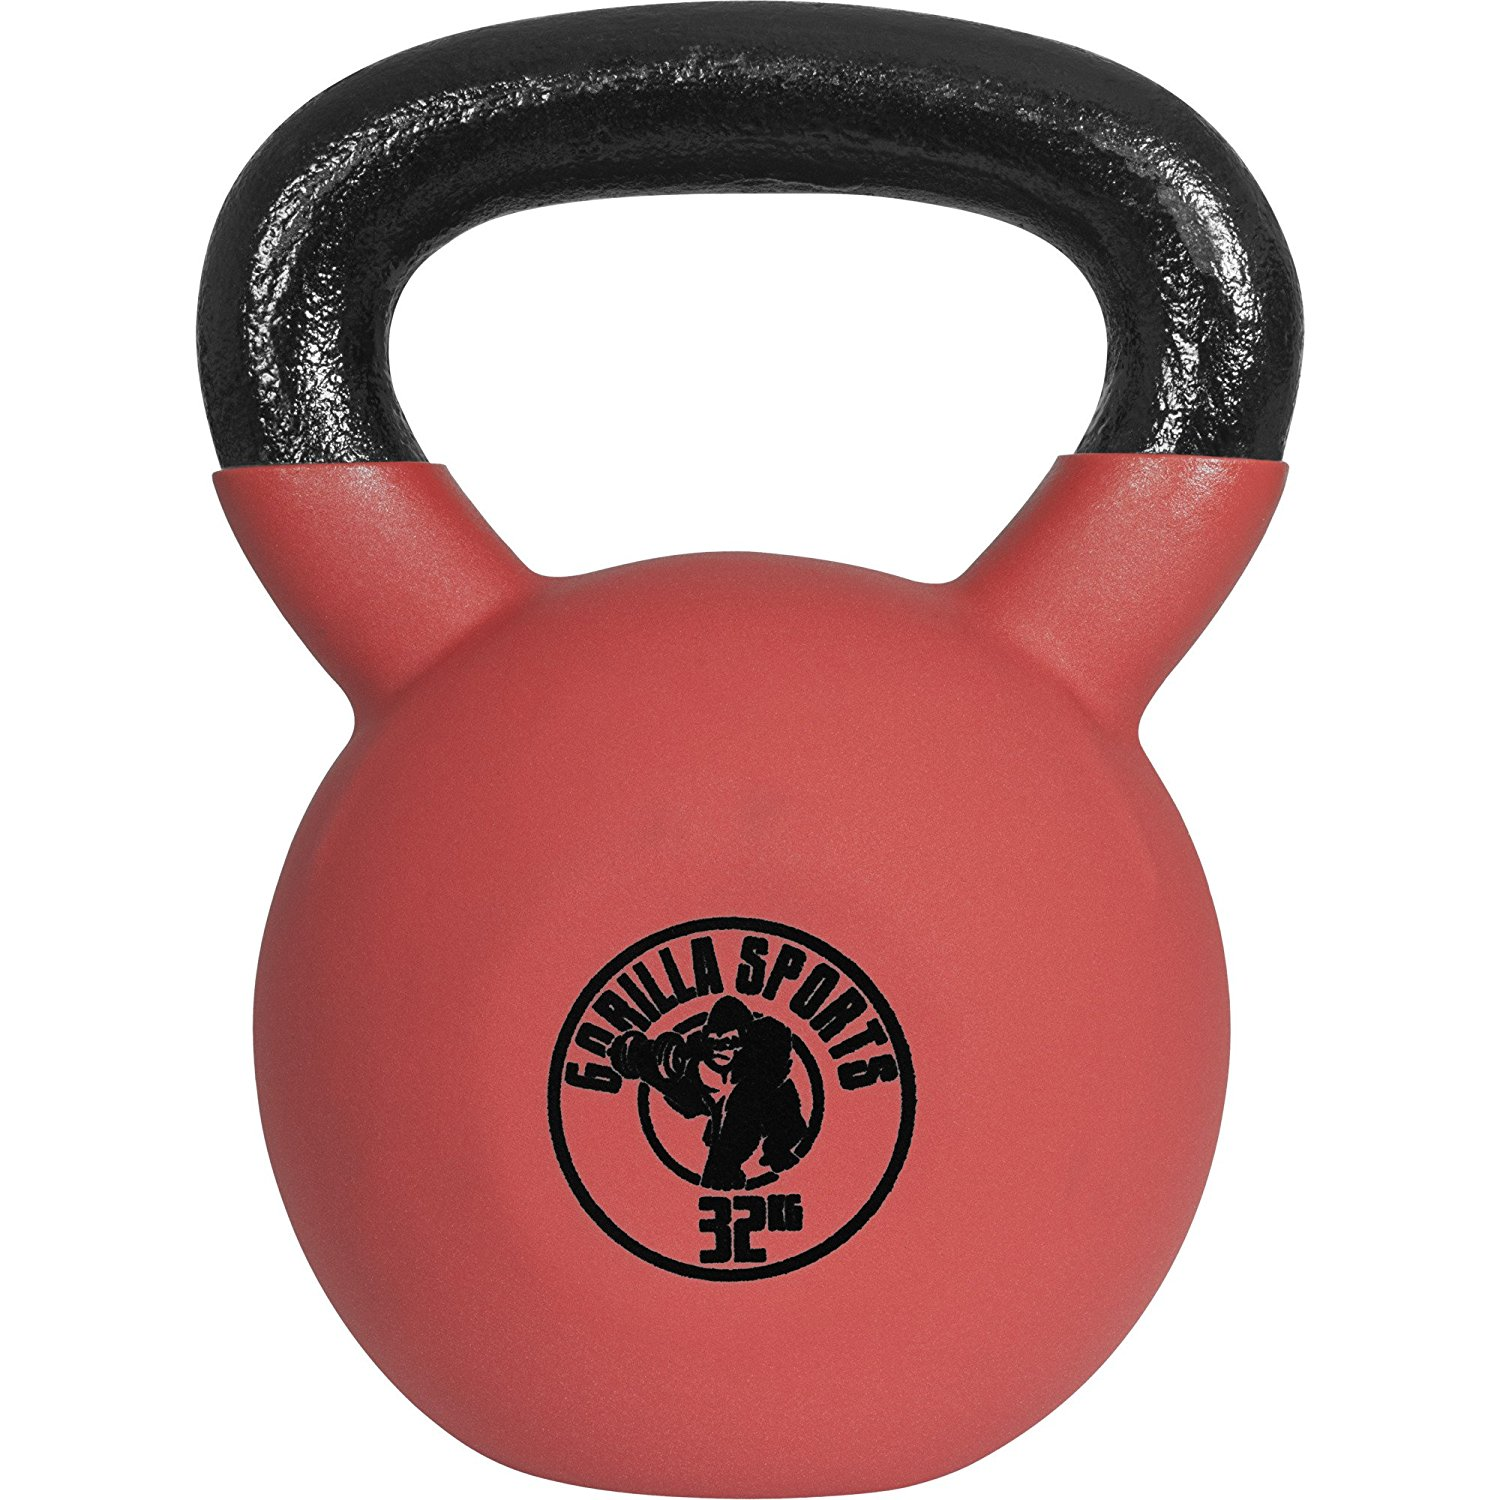 GORILLA SPORTS Red Rubber Kettelbell 4-28 kg – Fitness cast iron weight with neoprene coating red/black